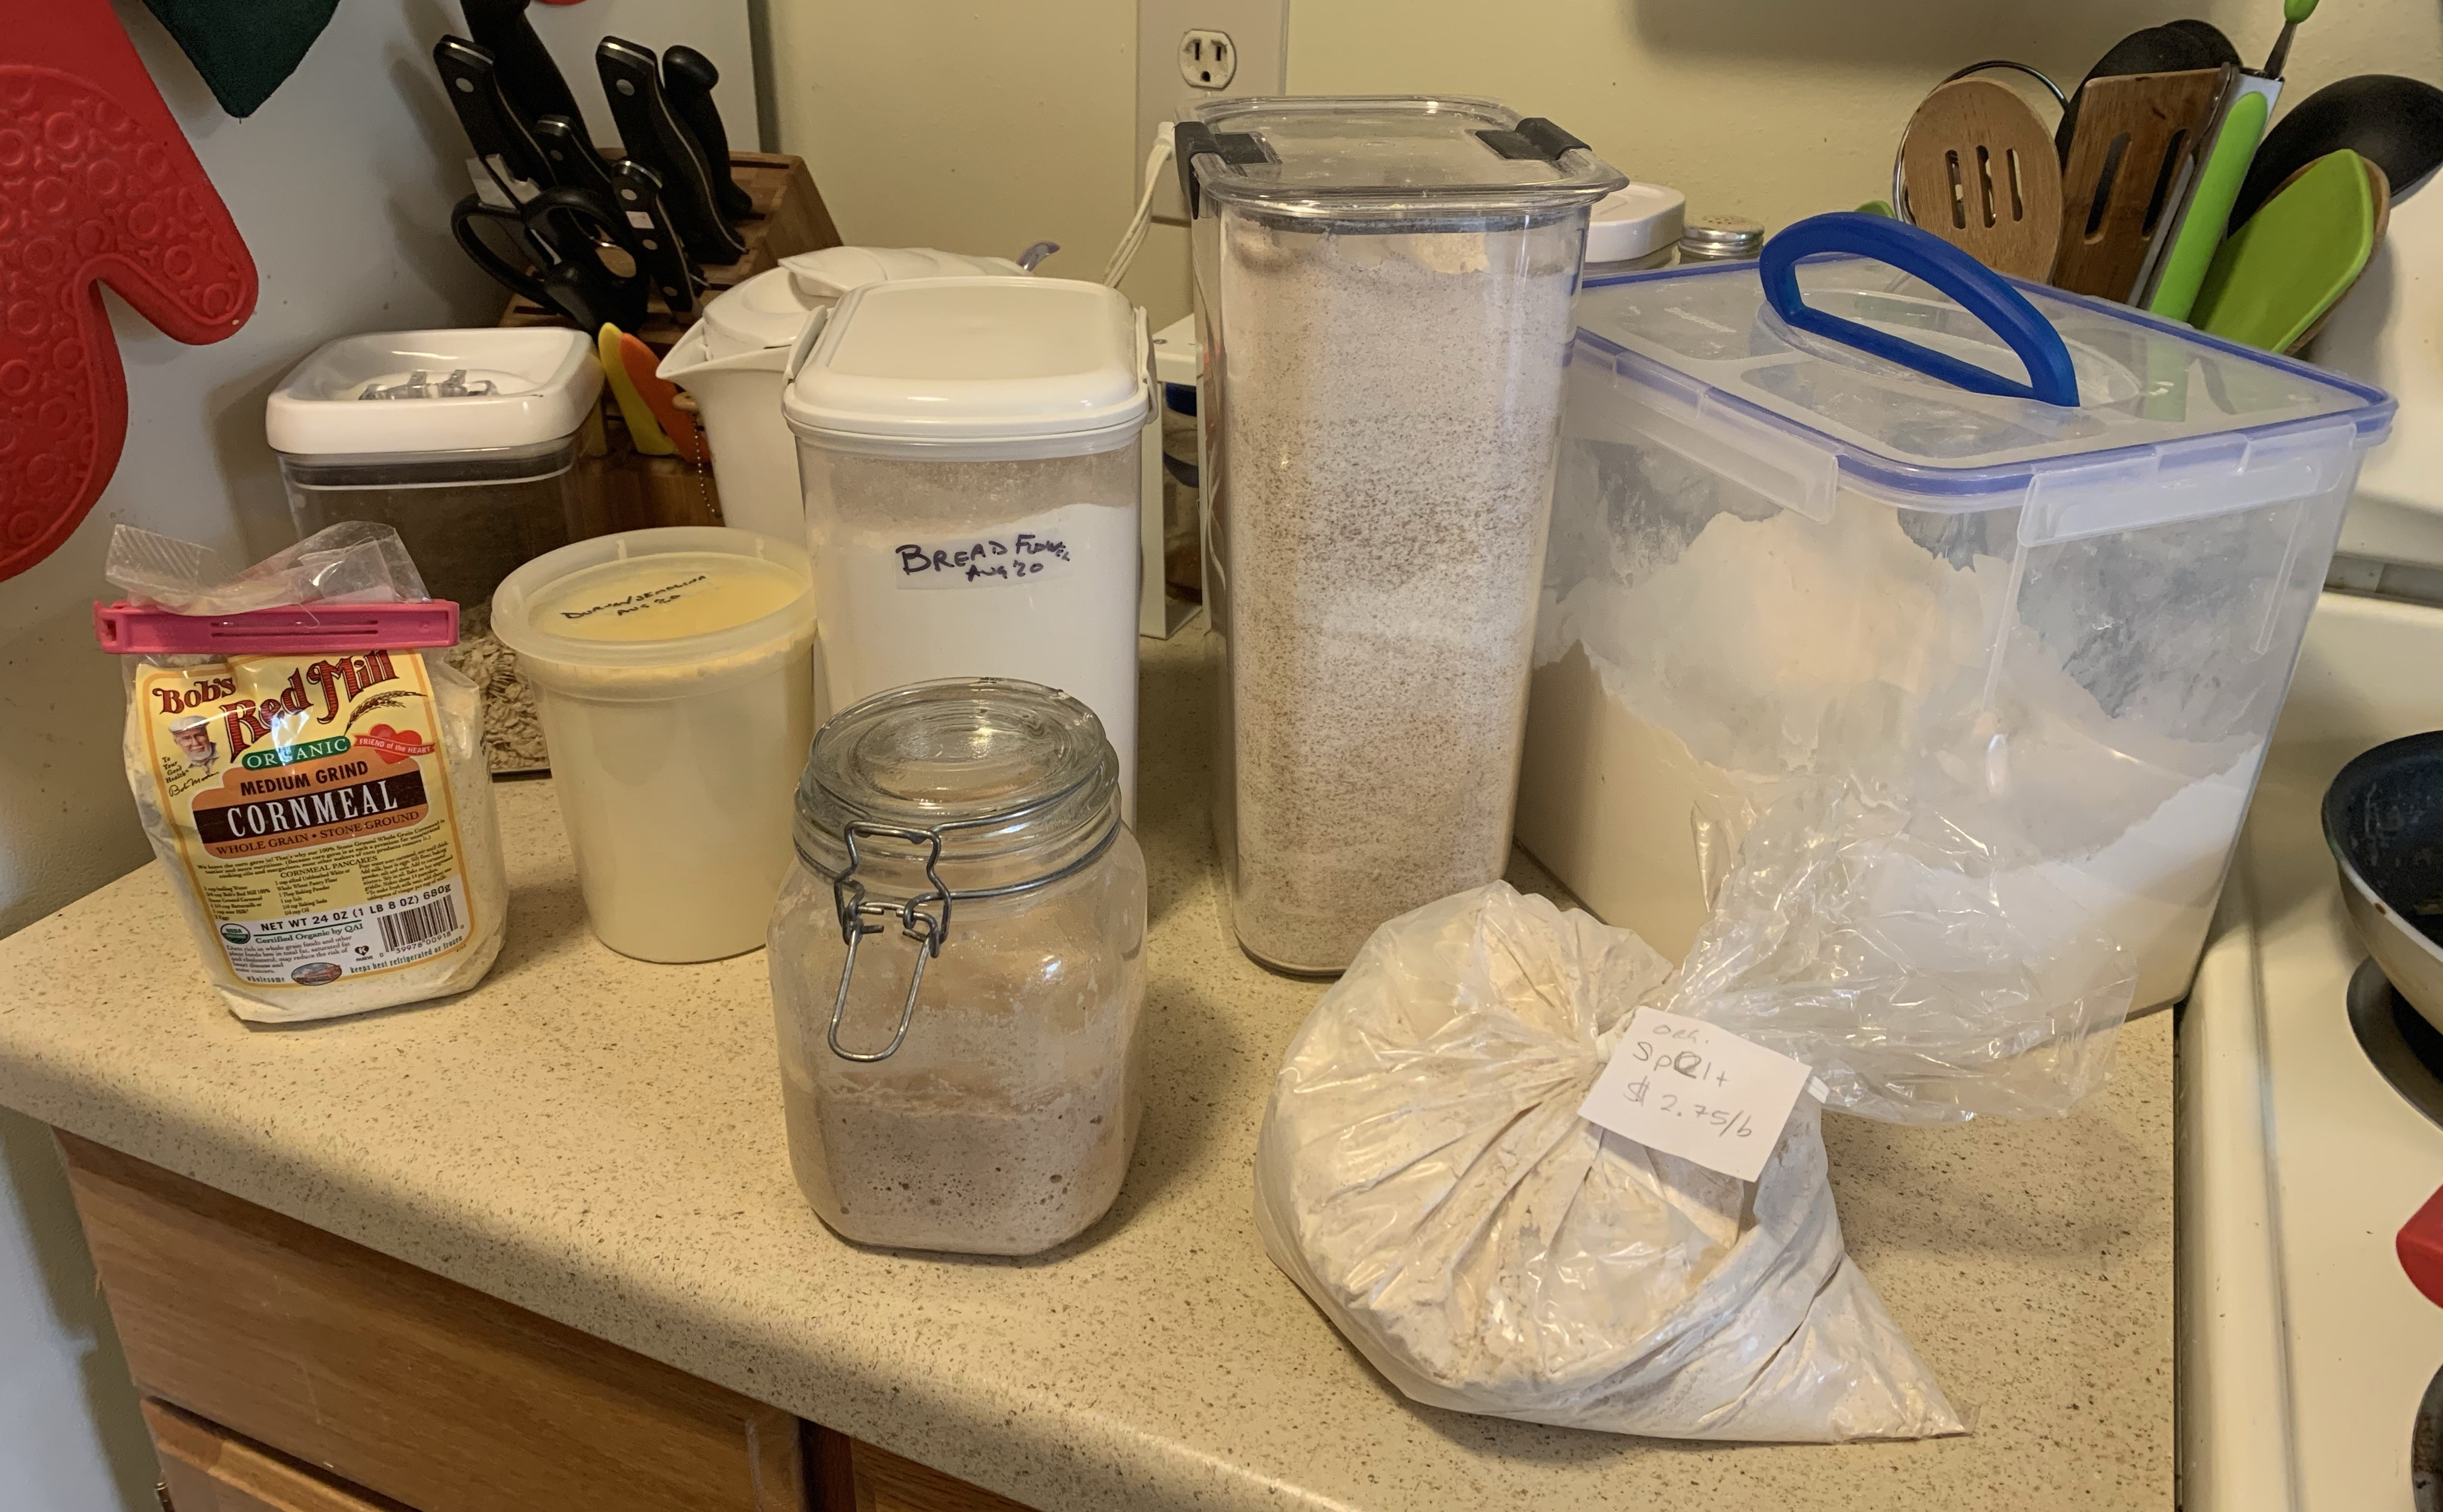 Counter with containers of cornmeal, semolina flour, bread flour, whole-wheat flour, all-purpose flour, a jar of sourdough starter, and spelt flour.